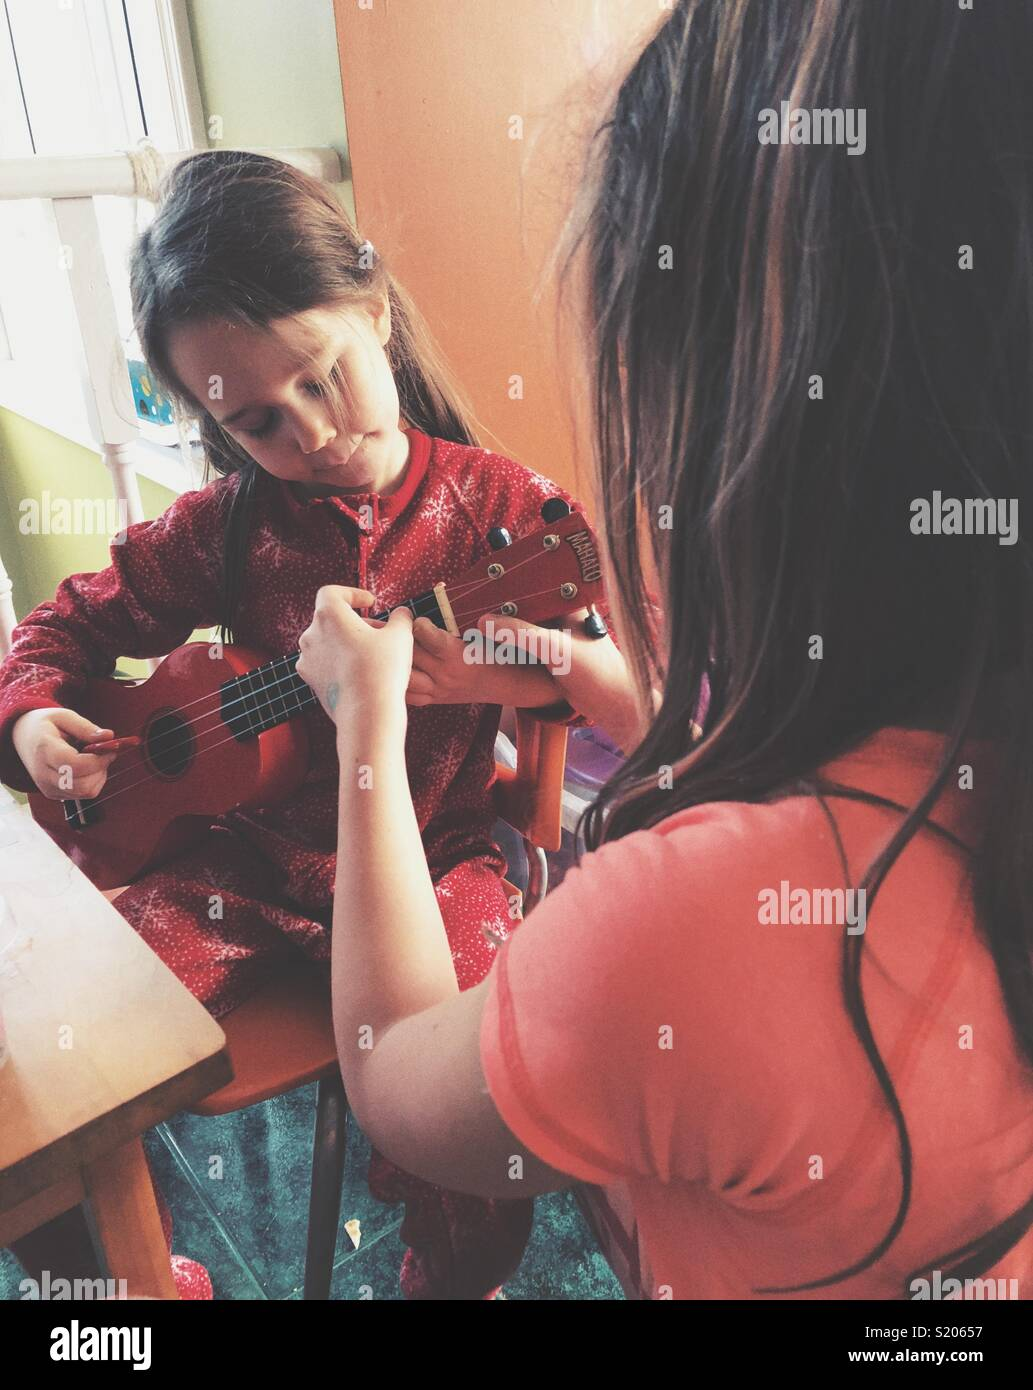 Big sister teaching little sister how to play ukulele - Stock Image